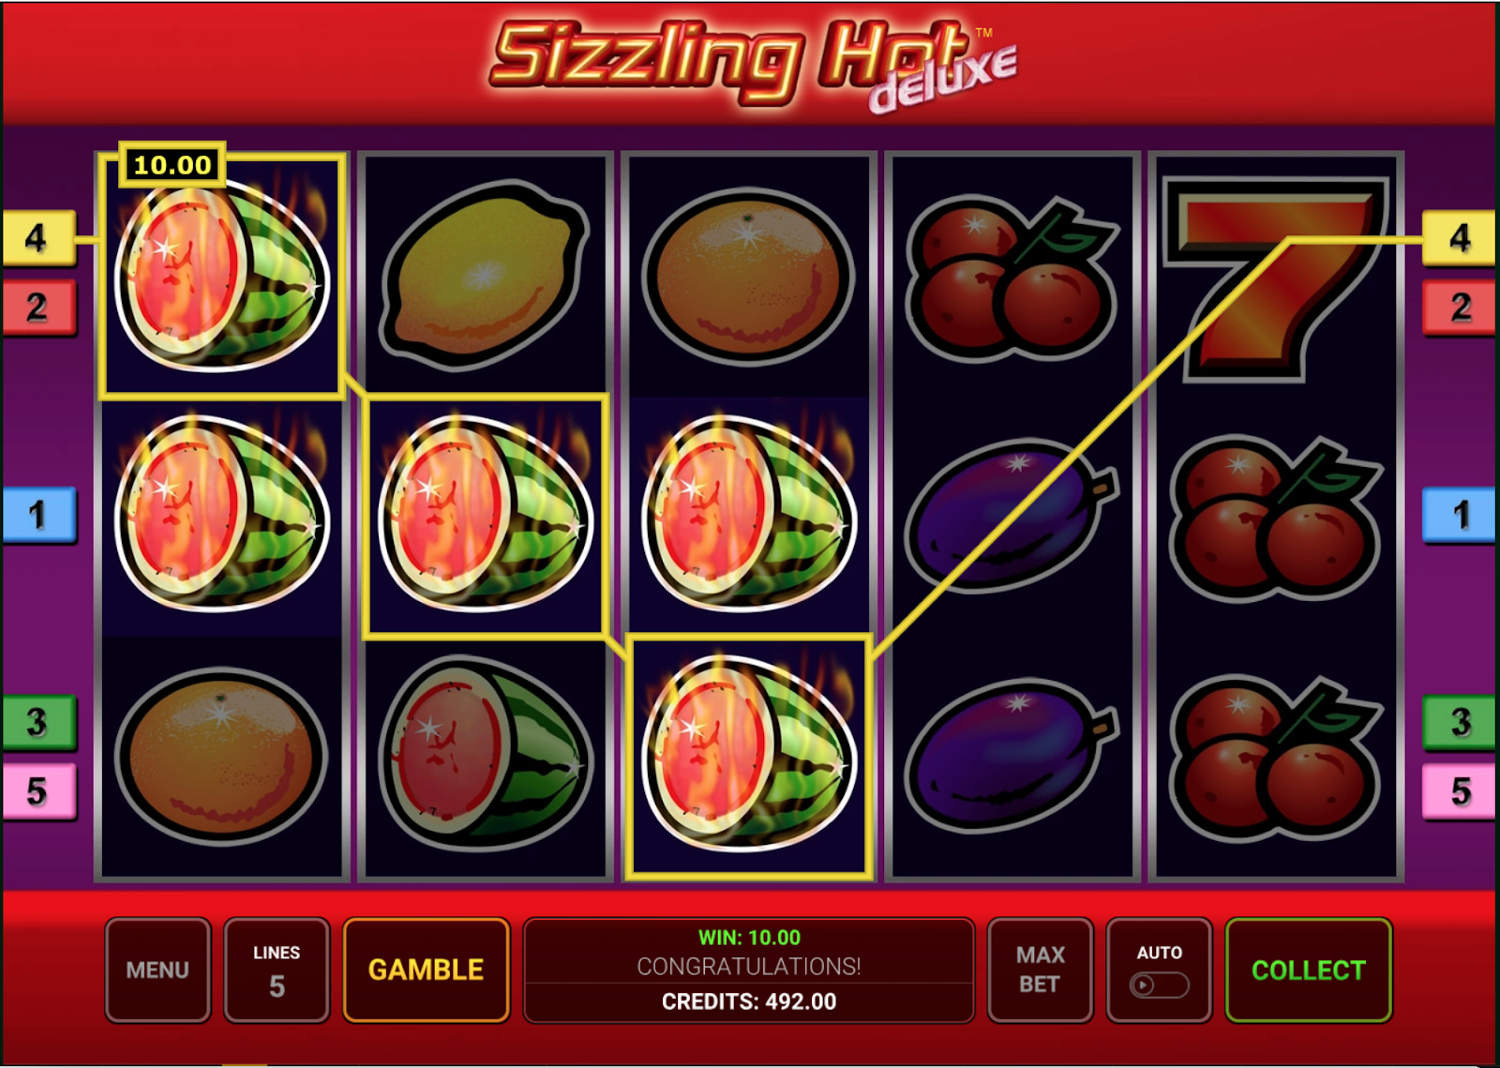 Only 5 winlines in Sizzling Hot Deluxe